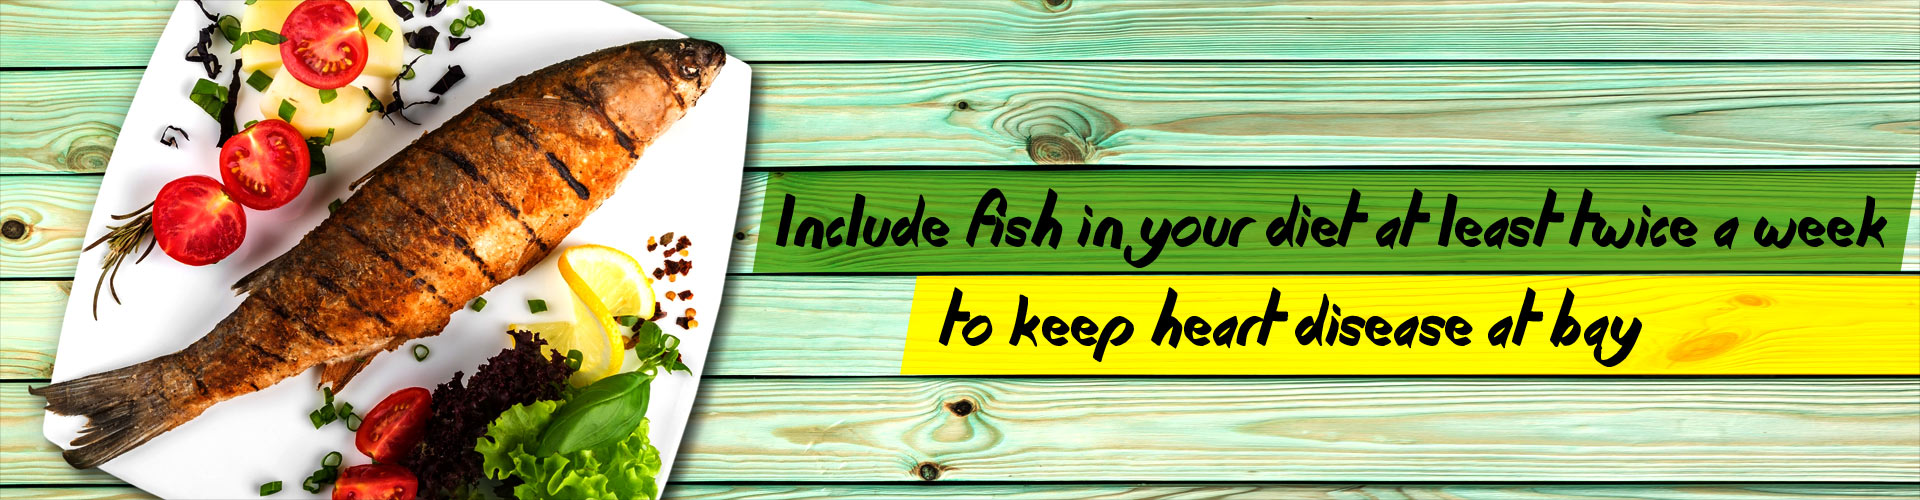 Include fish in your diet at least twice a week to keep heart disease at bay